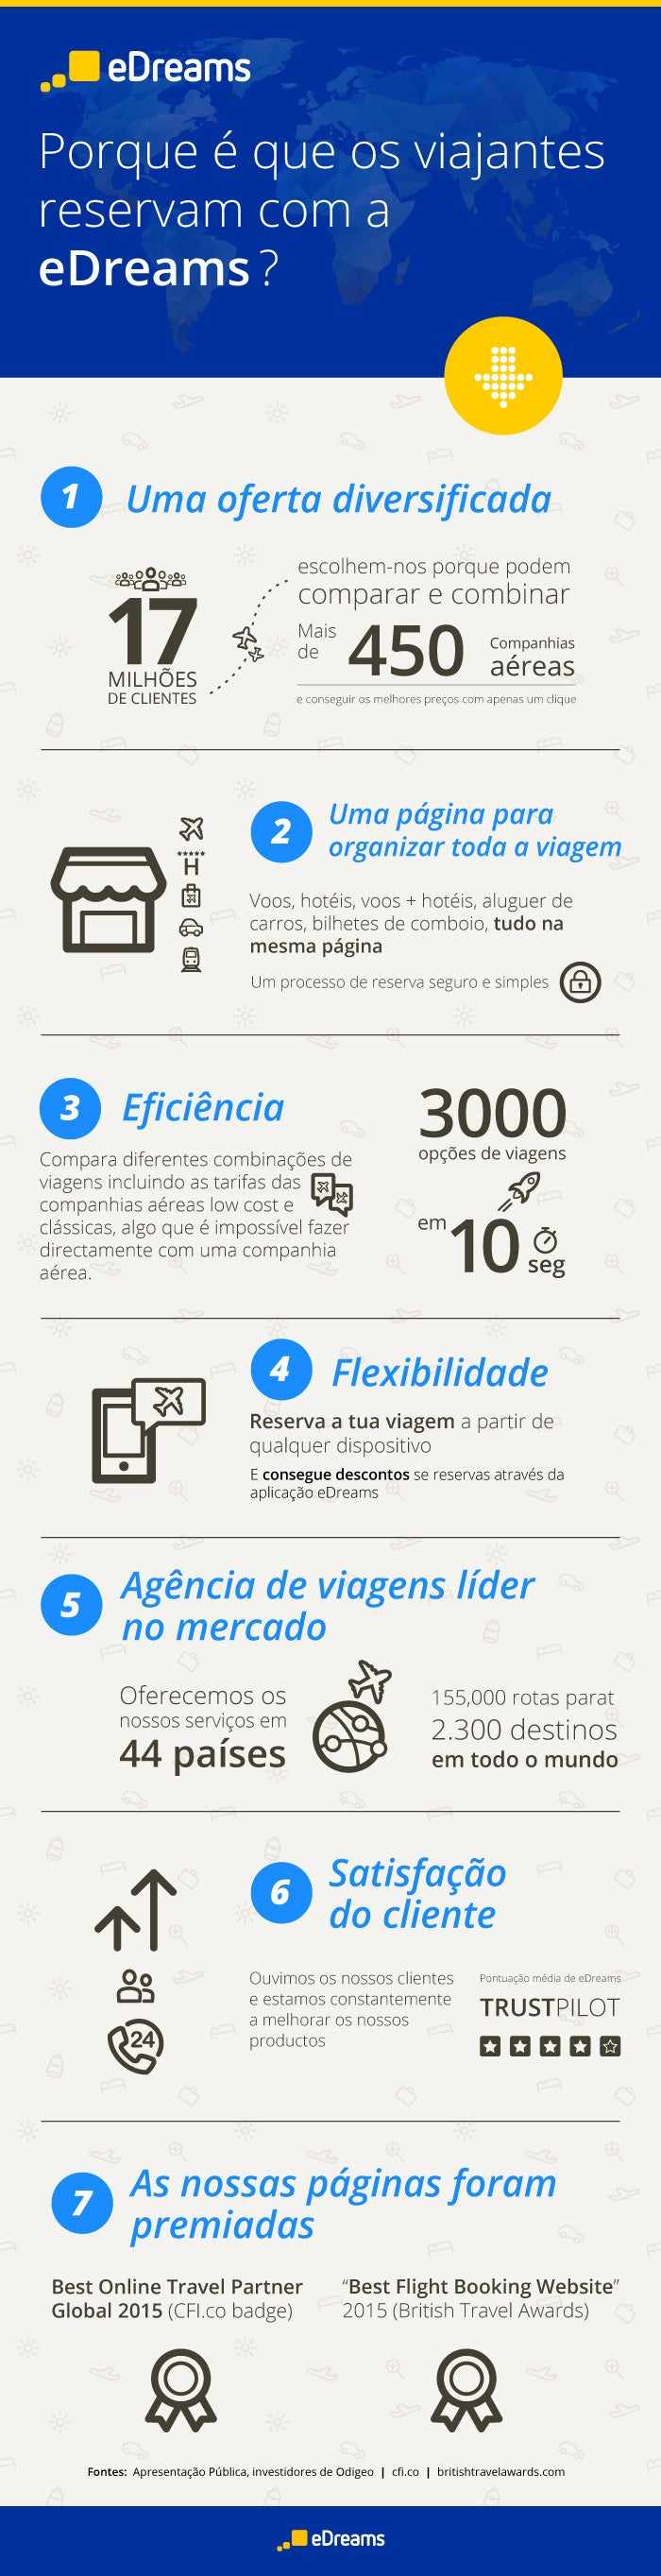 Infográfico eDreams